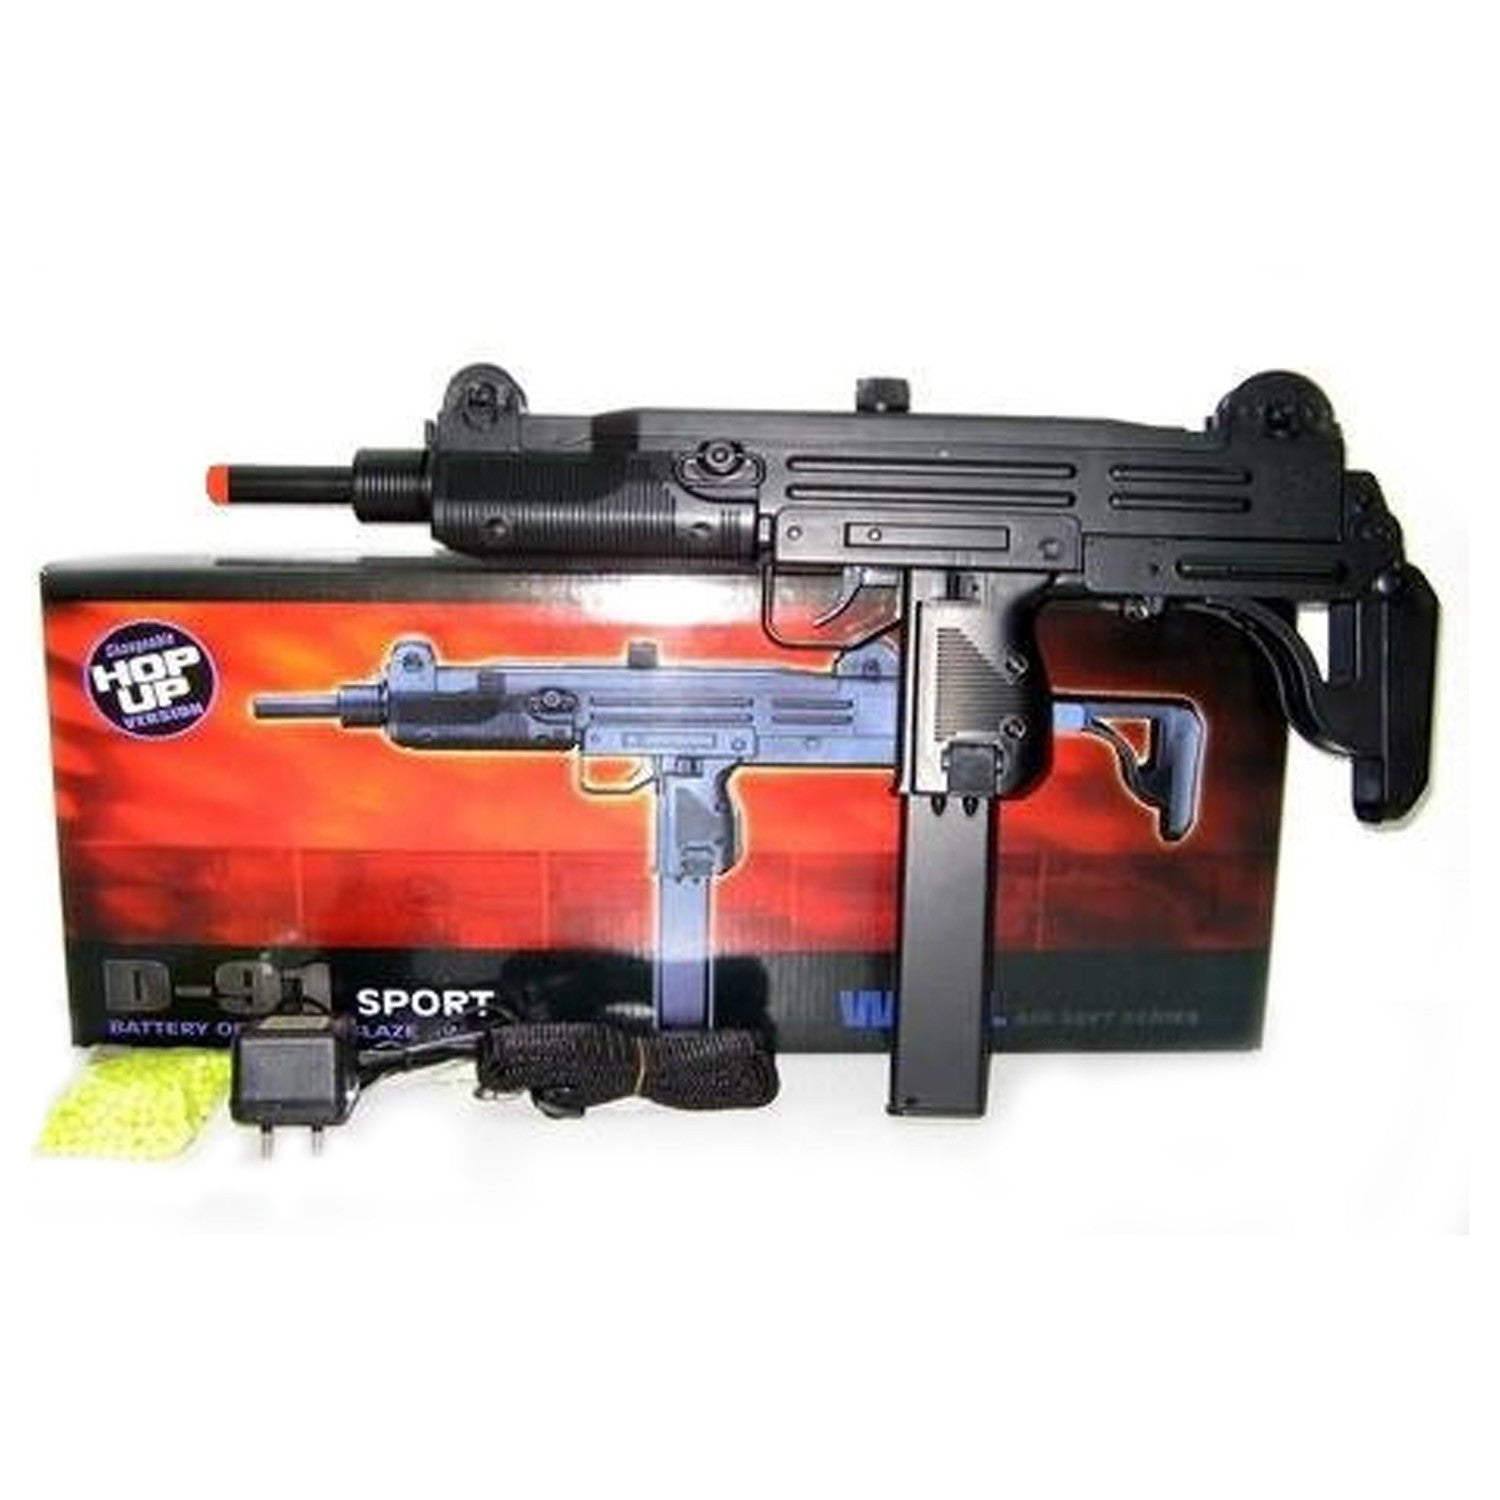 "D91 Airsoft Full Size Uzi Style -      Full Auto Electric Rifle     Full Size Uzi Style     Fully automatic electric 1:1 scale     Uzi style airsoft rifle.     Measures 25"" in length     Shoots approximately 350 rounds per minute at about 220 fps."